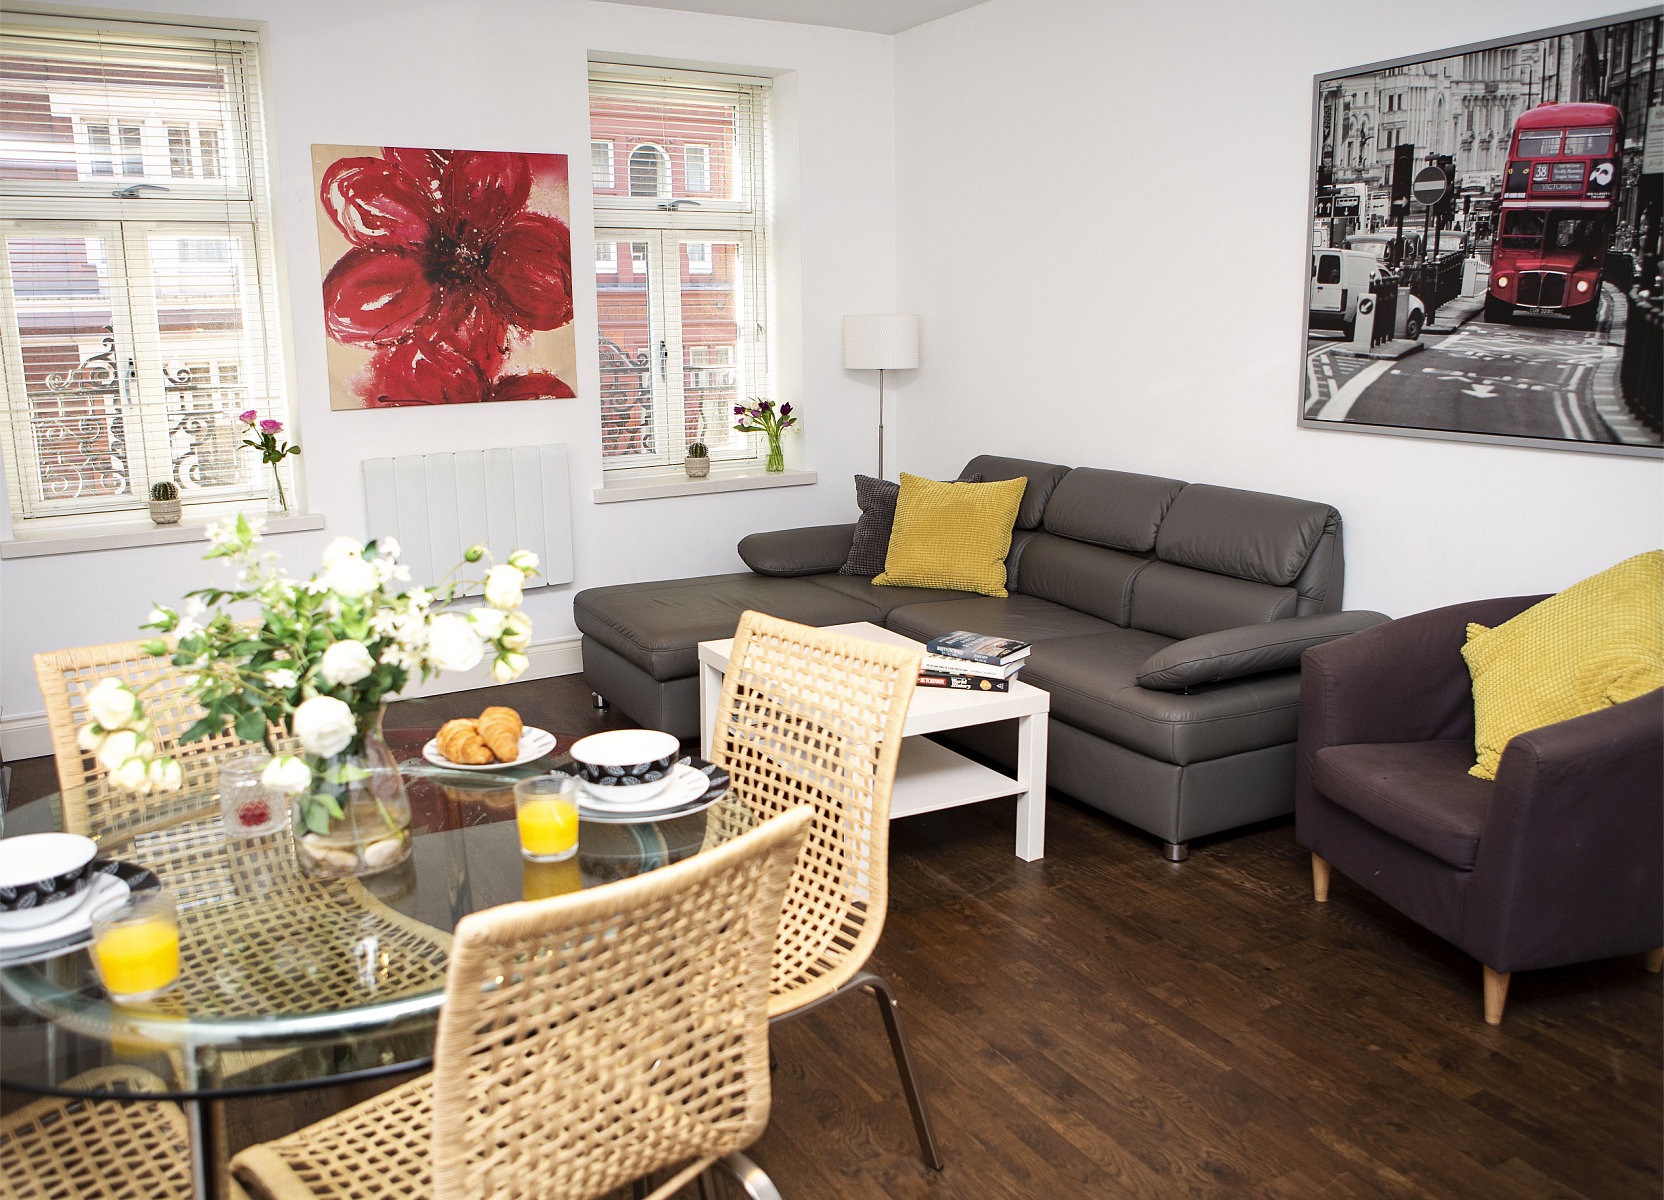 Trafalgar Square Apartments, Apartment 2, Covent Garden - Dining Area